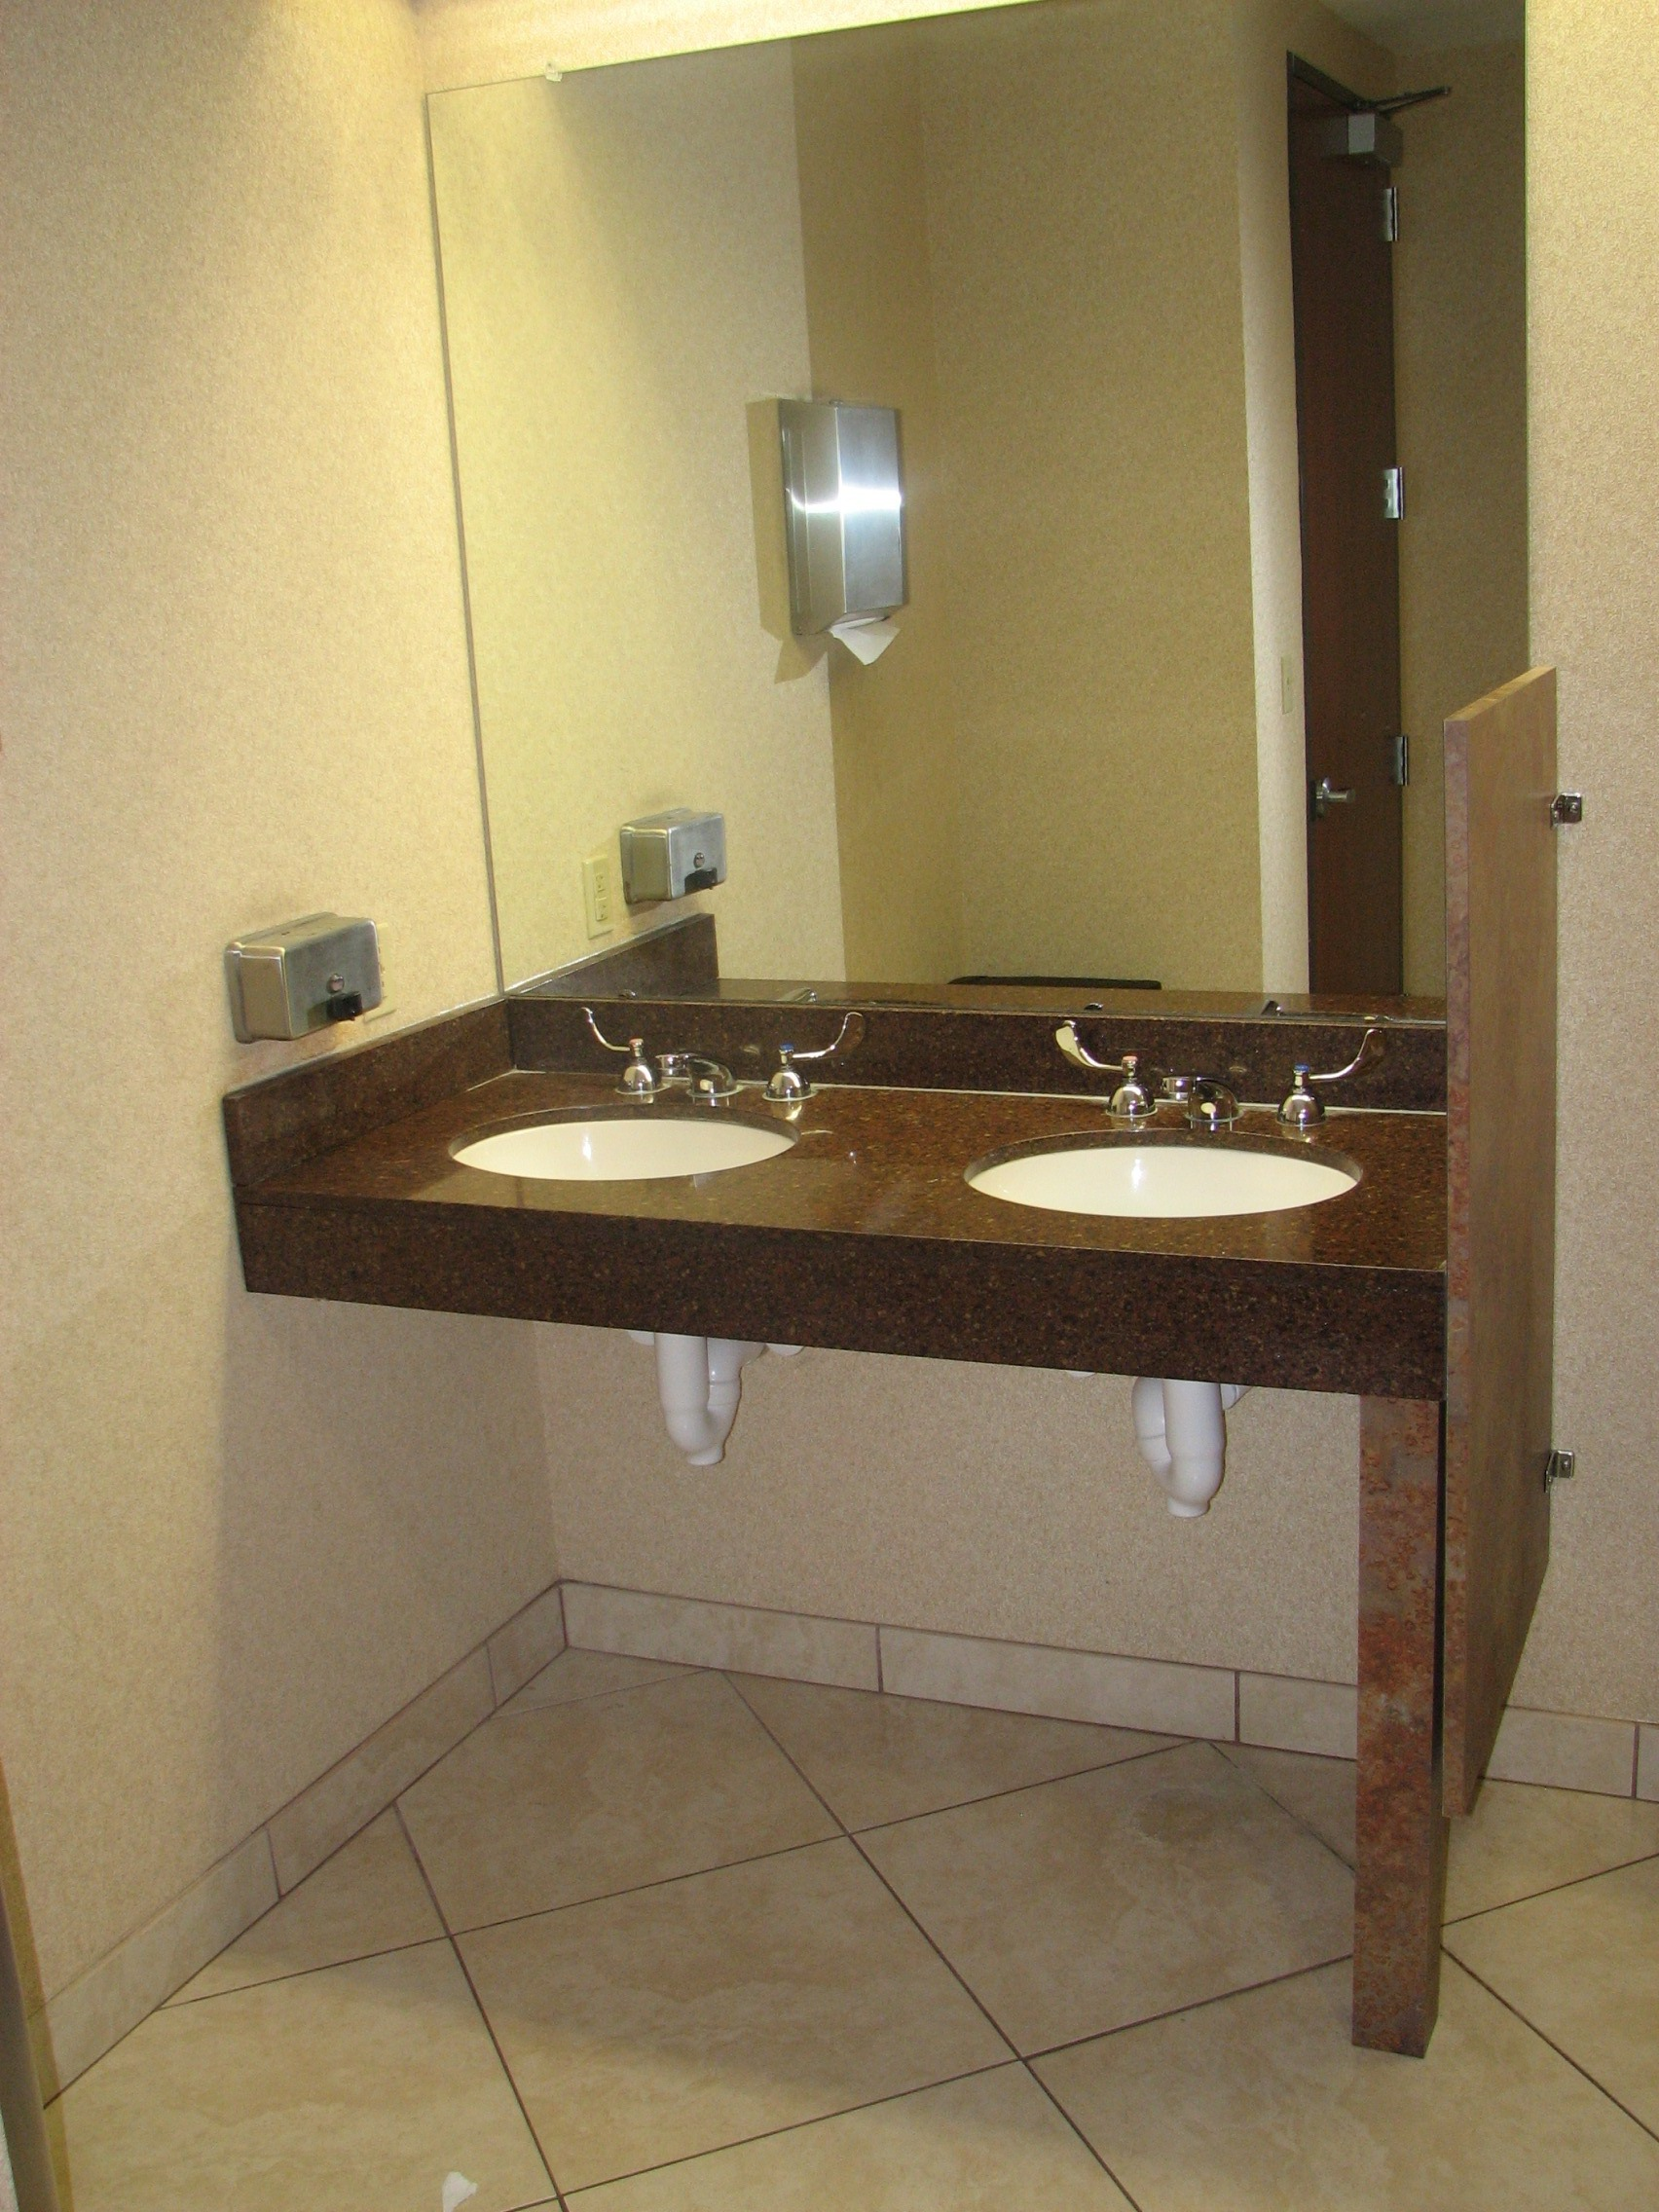 Vanity access for wheelchair - Granite Vanity Top With Pipe Wrap Protection